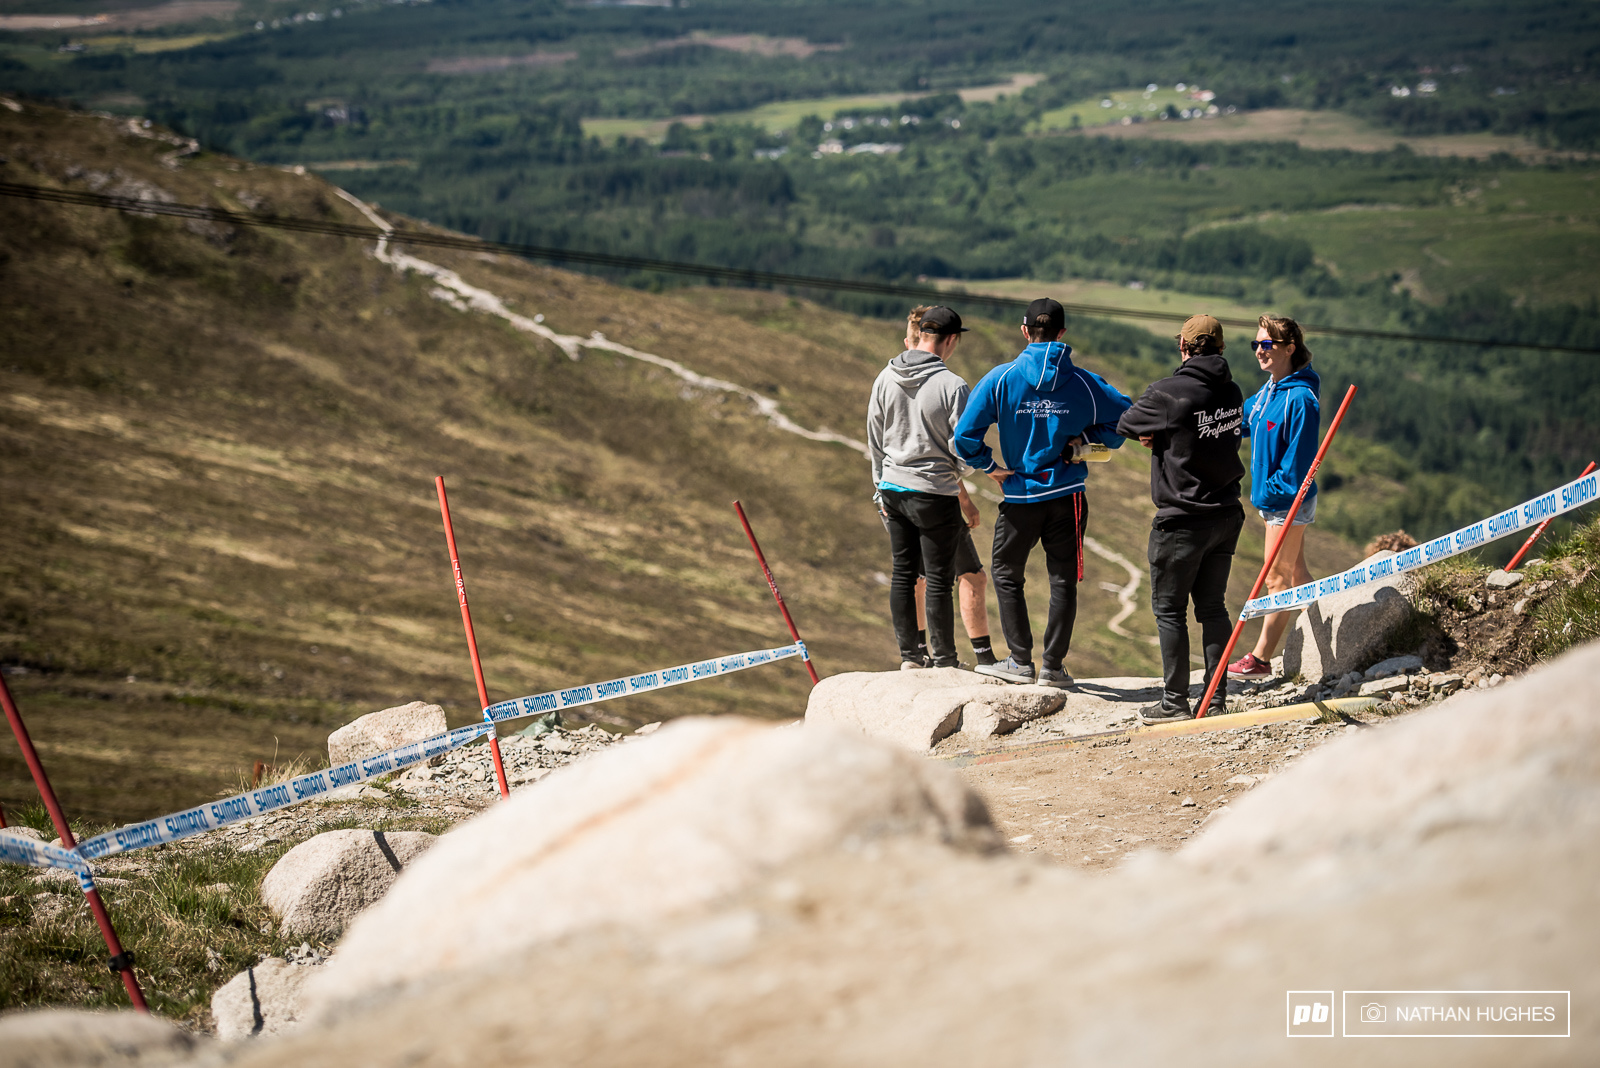 Danny Hart is one to watch at Fort William more than usual. A week s riding before and after the BDS round he won here and he s learned so much .